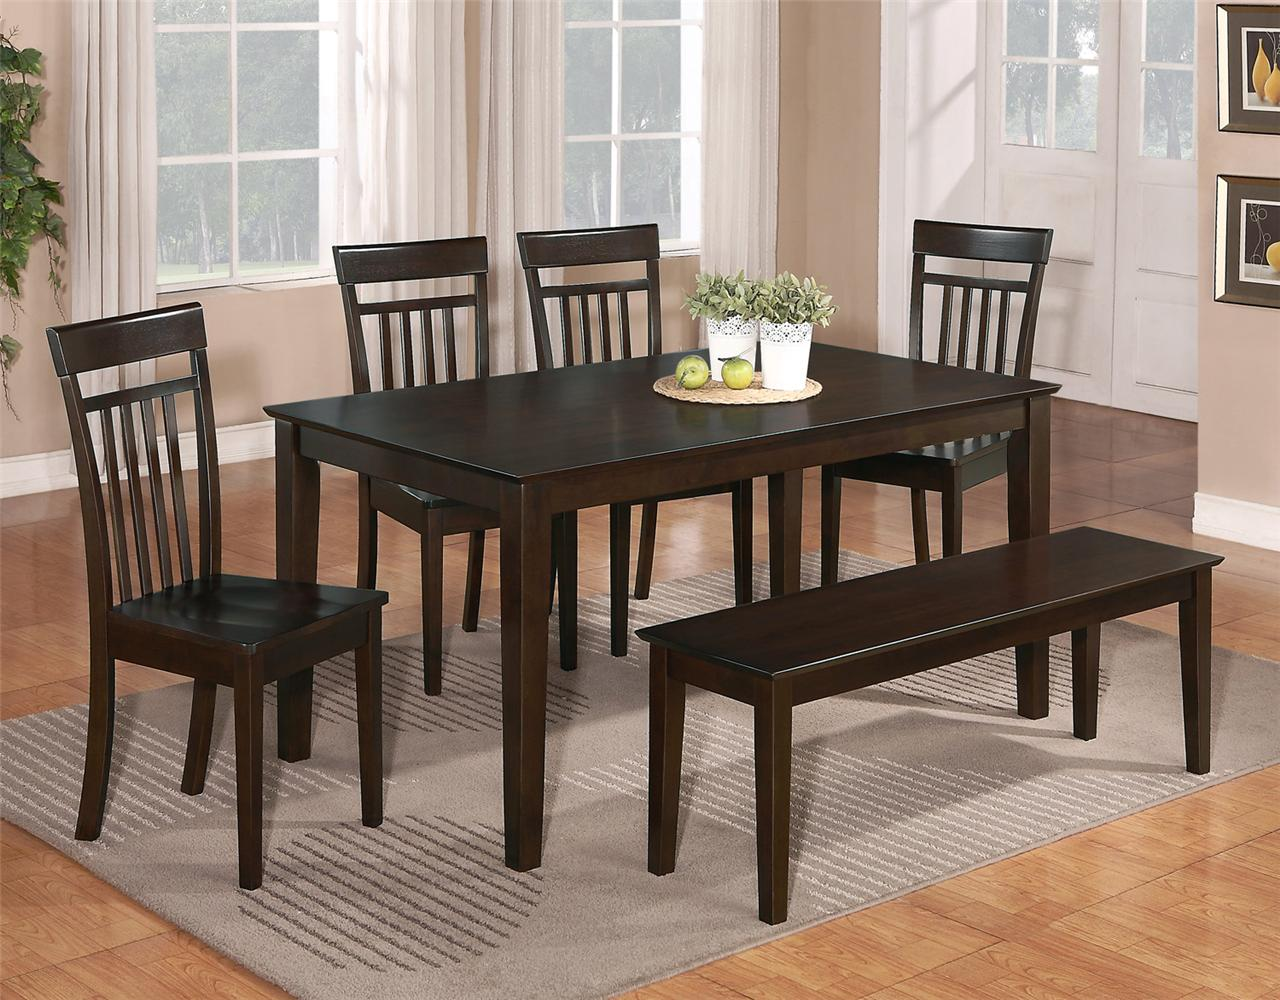 6 pc dinette kitchen dining room set table w 4 wood chair for Dining set with bench and chairs